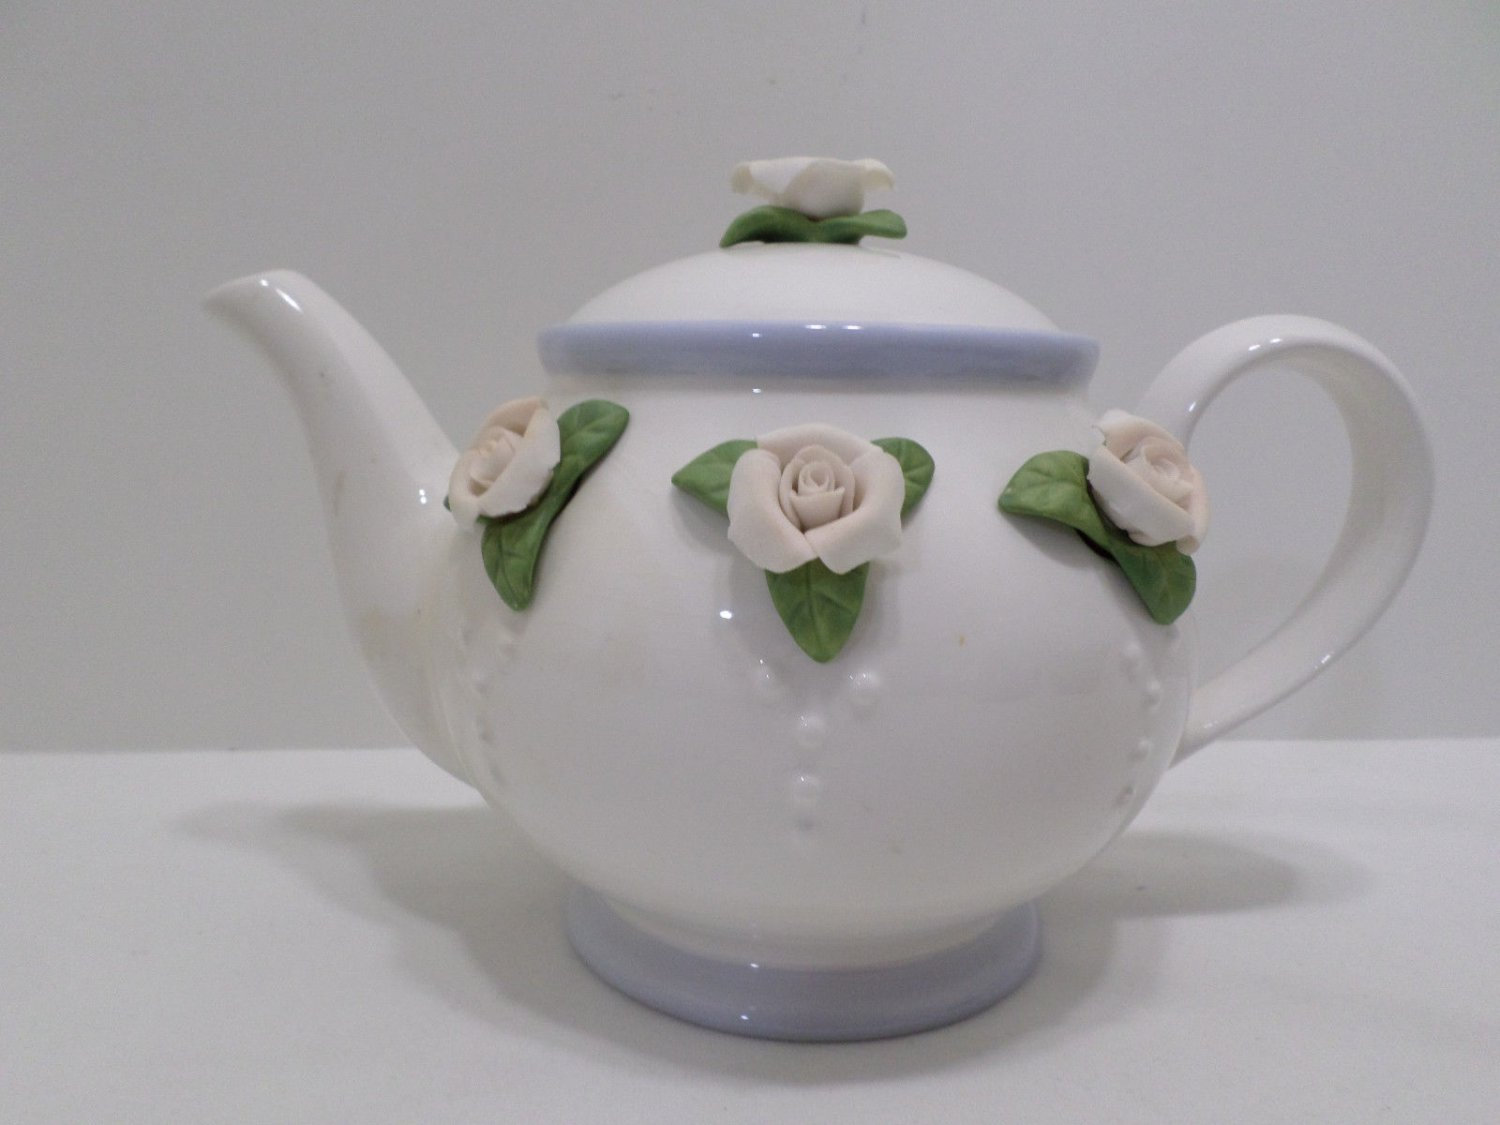 Teleflora Teapot Porcelain with Floral Design made in China